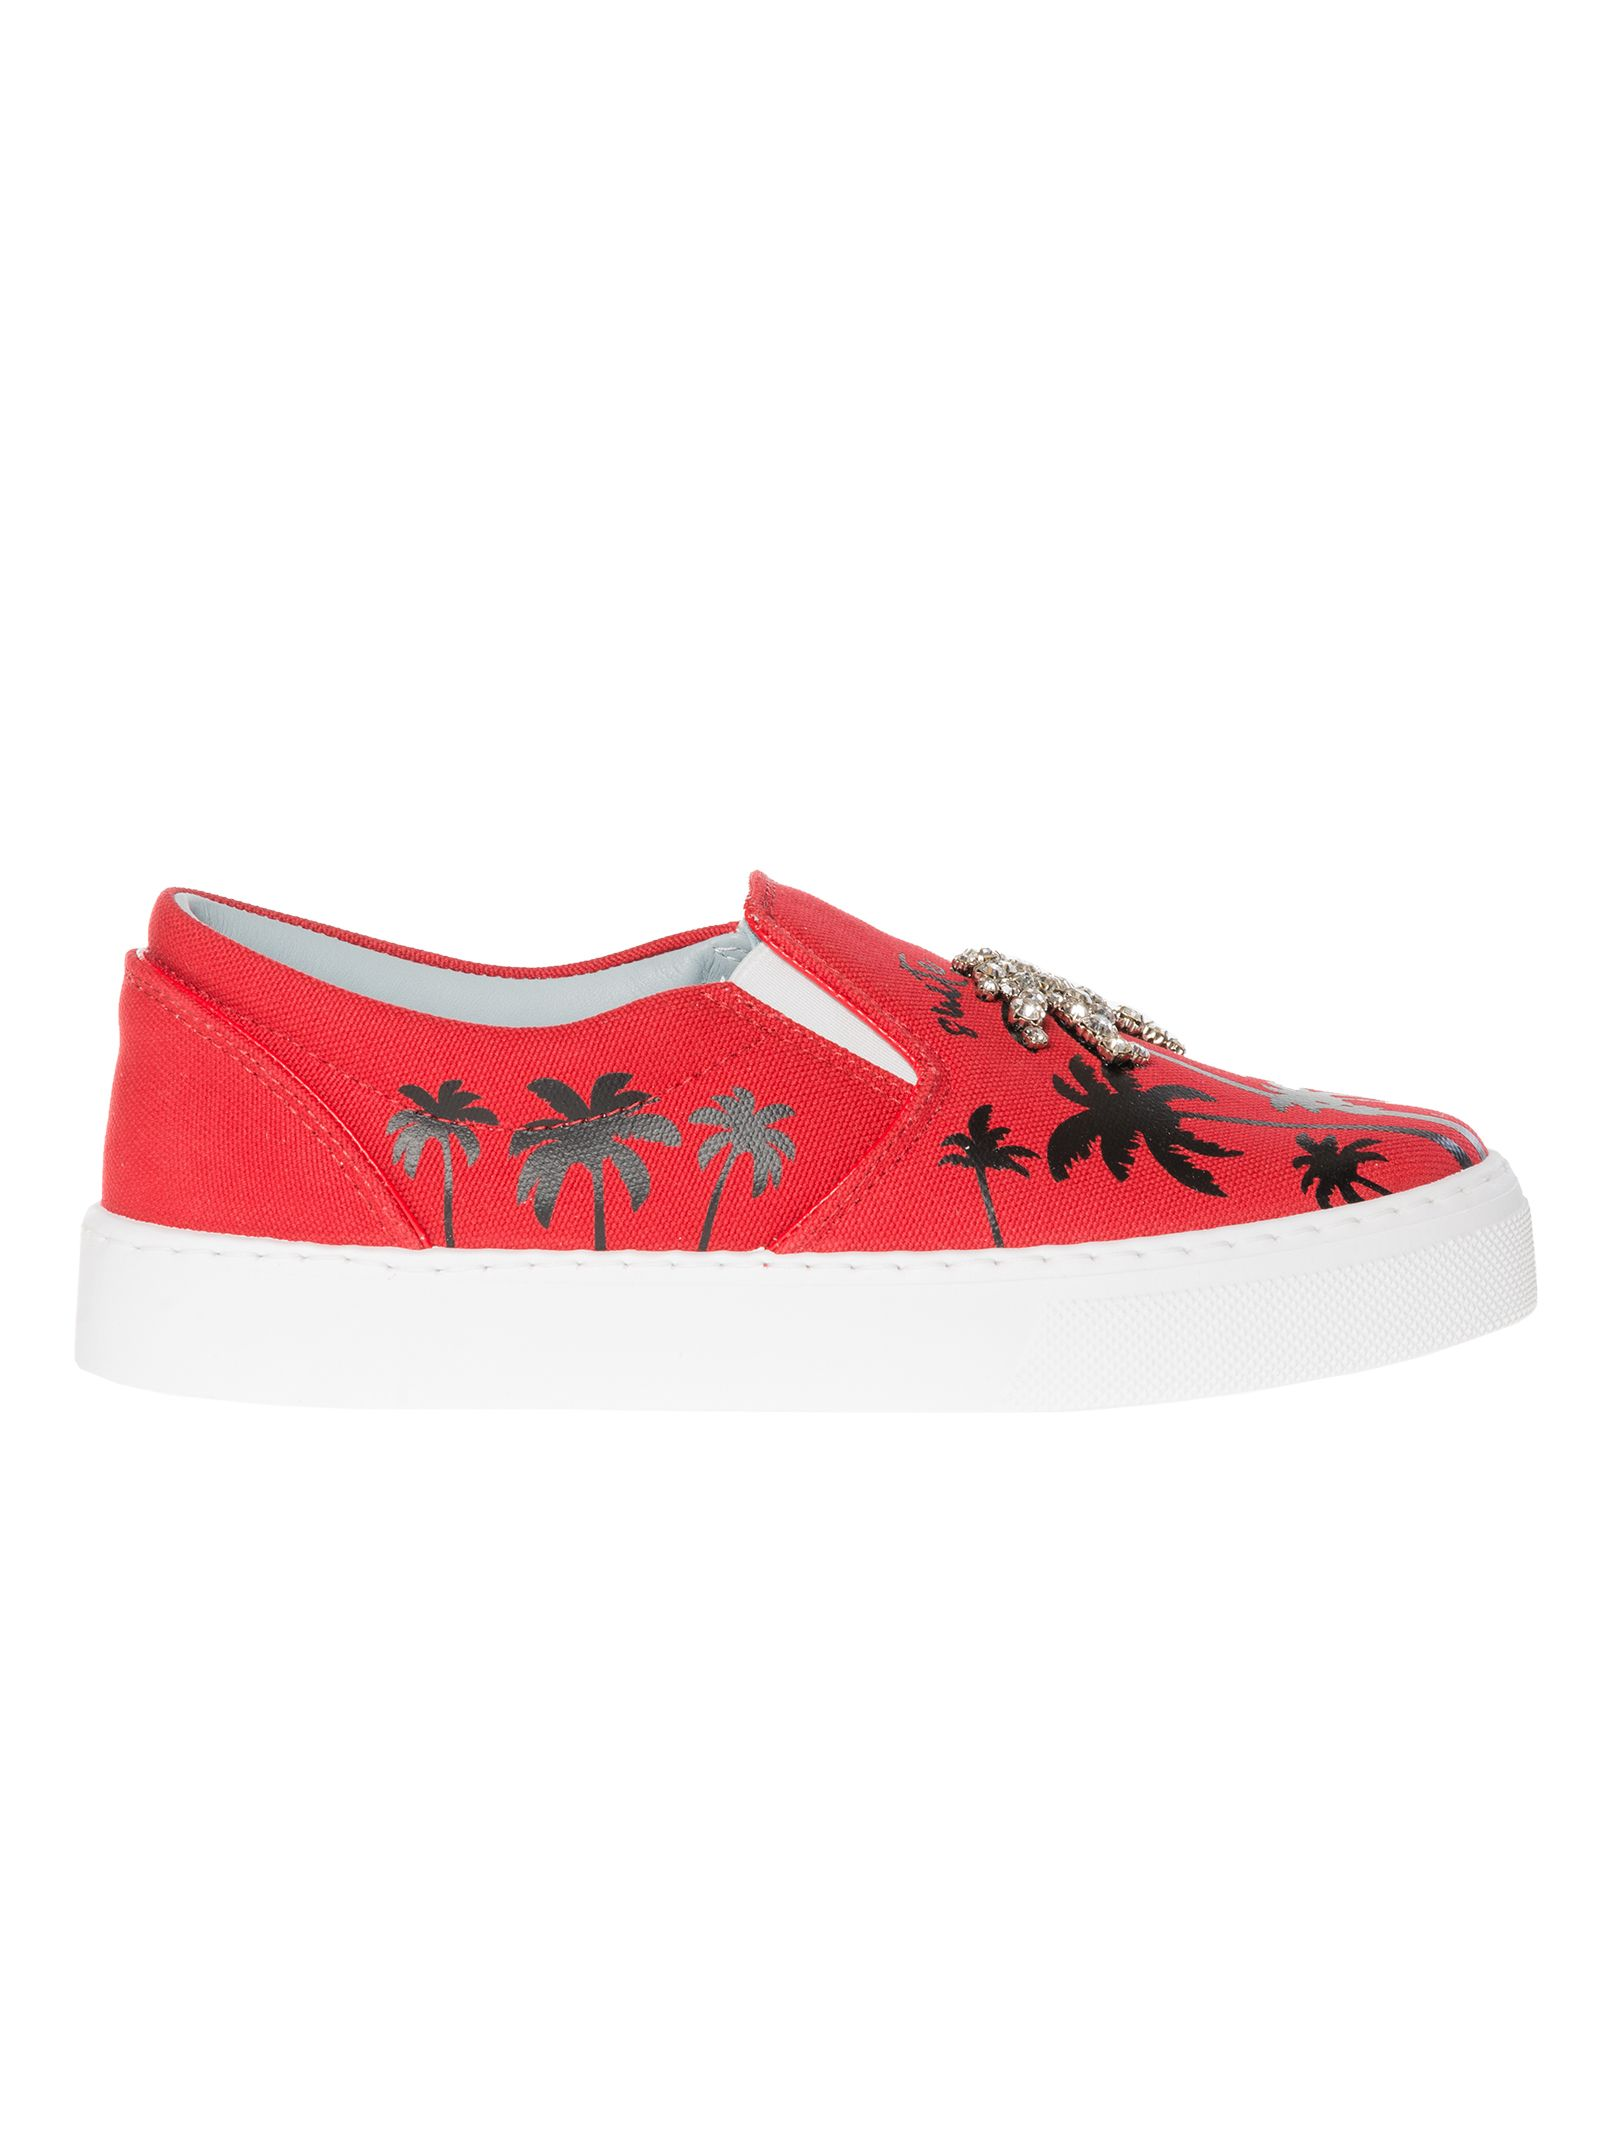 Chiara Ferragni Black/red Leather Sneakers